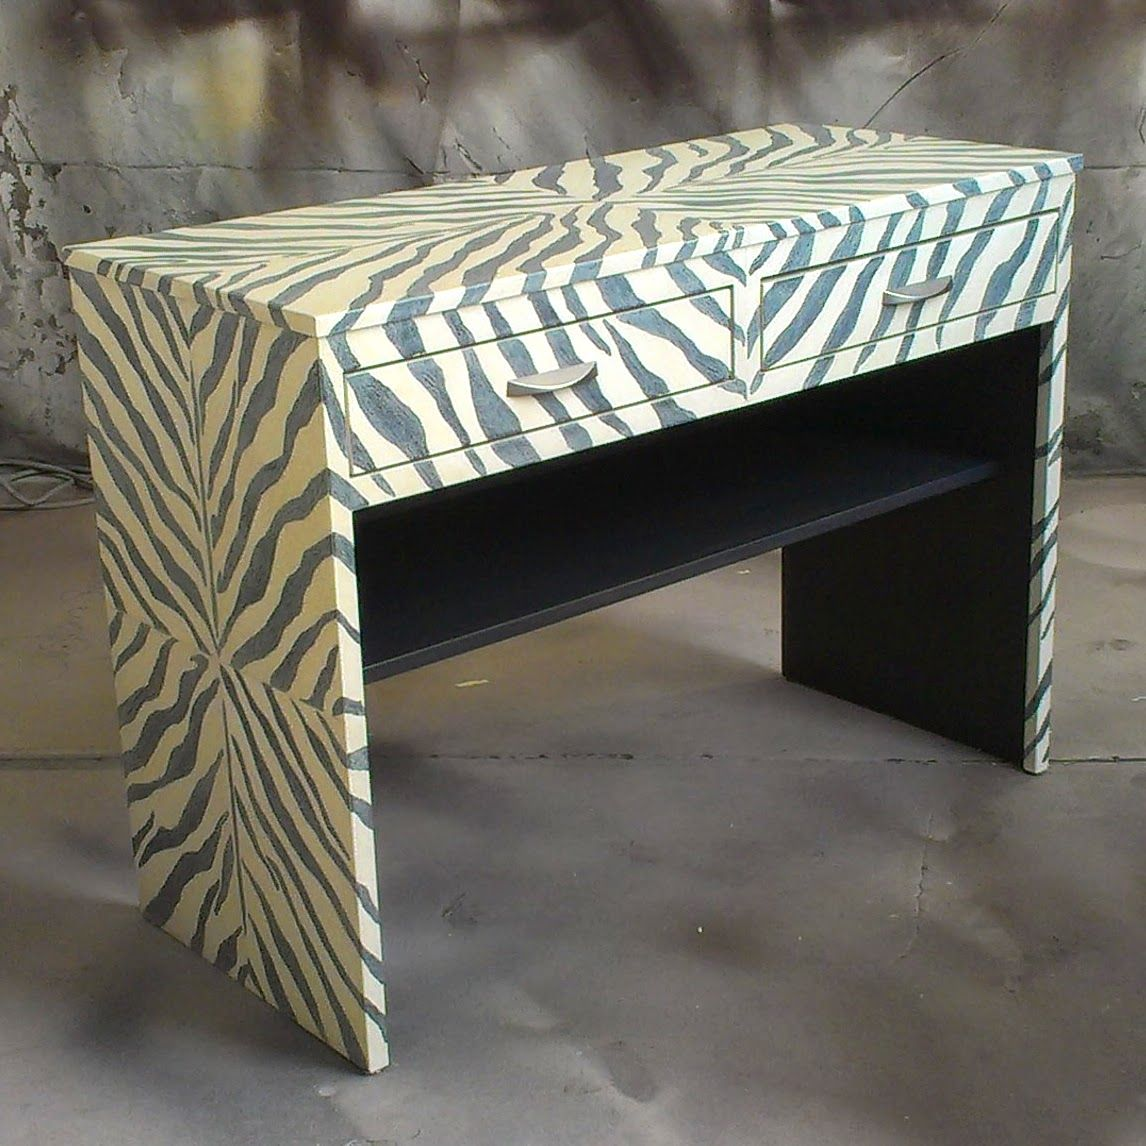 Perfect Zebra Pattern Console: Toned Down The Black Stripes With A Cream Colored  Glaze. Then Sanded It Back A Bit To Reveal A Little Of The Darker Color.